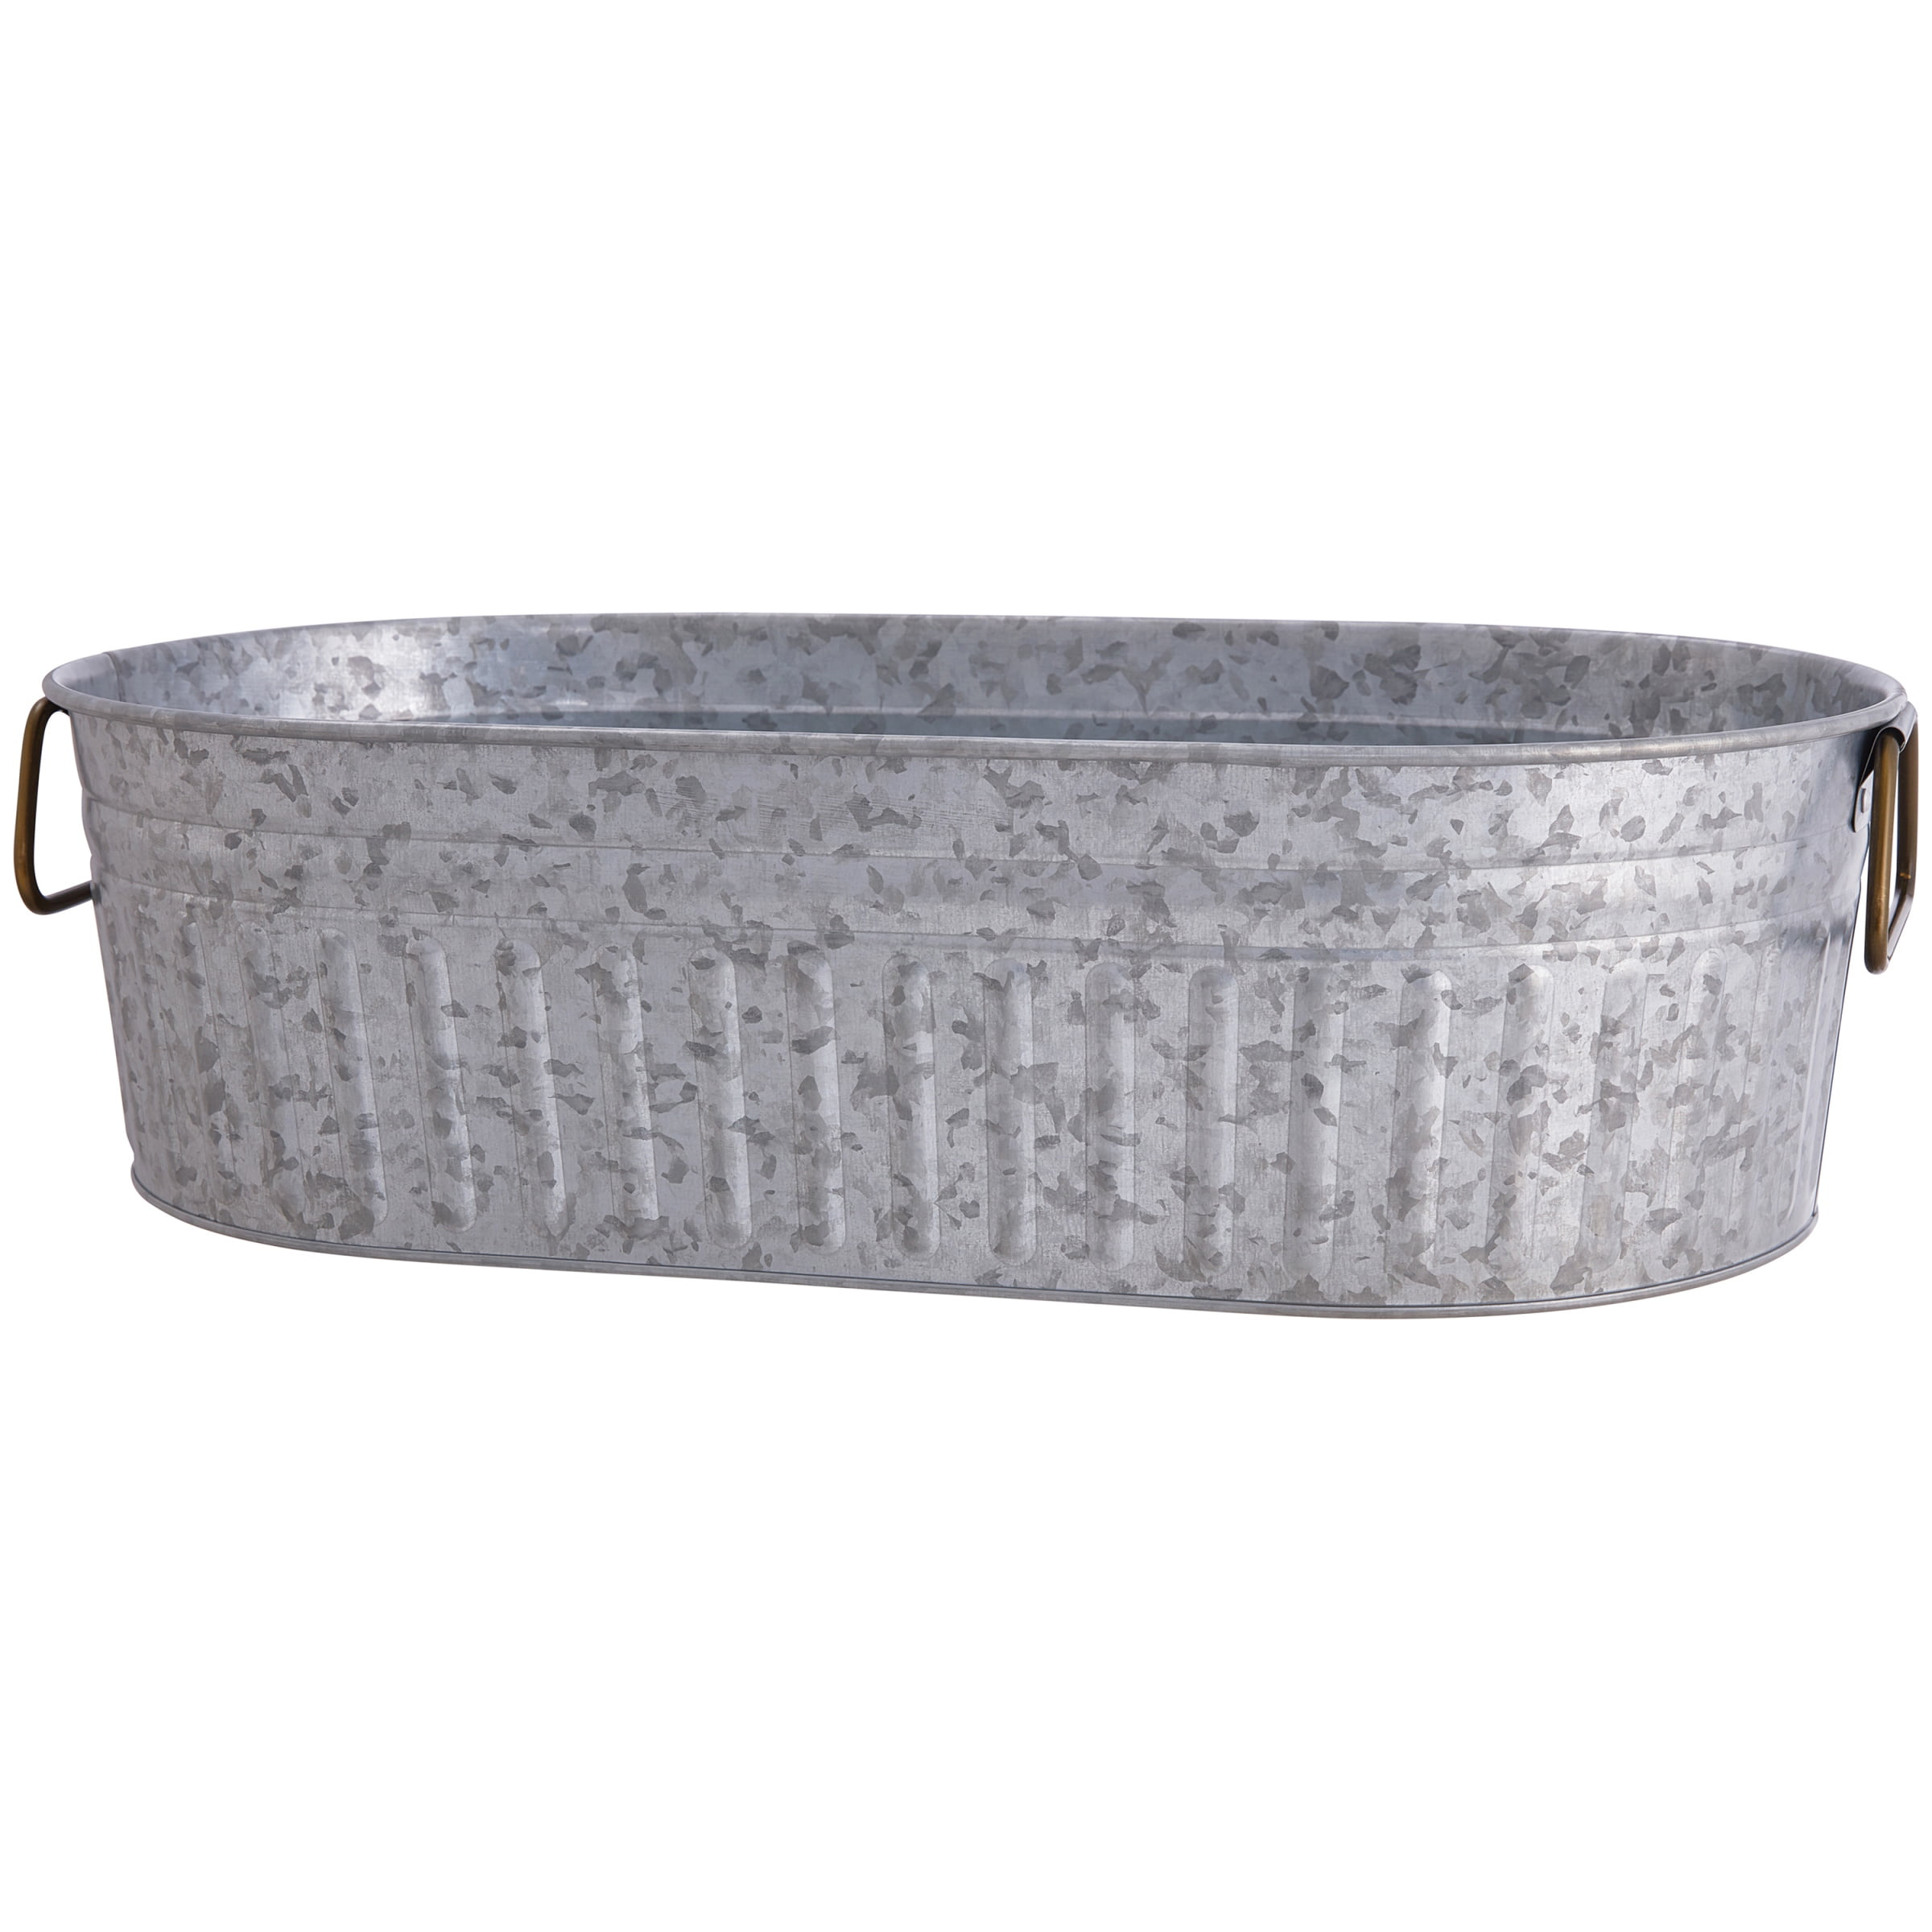 Better Homes Gardens Galvanized Oval Tub Walmart Com Walmart Com